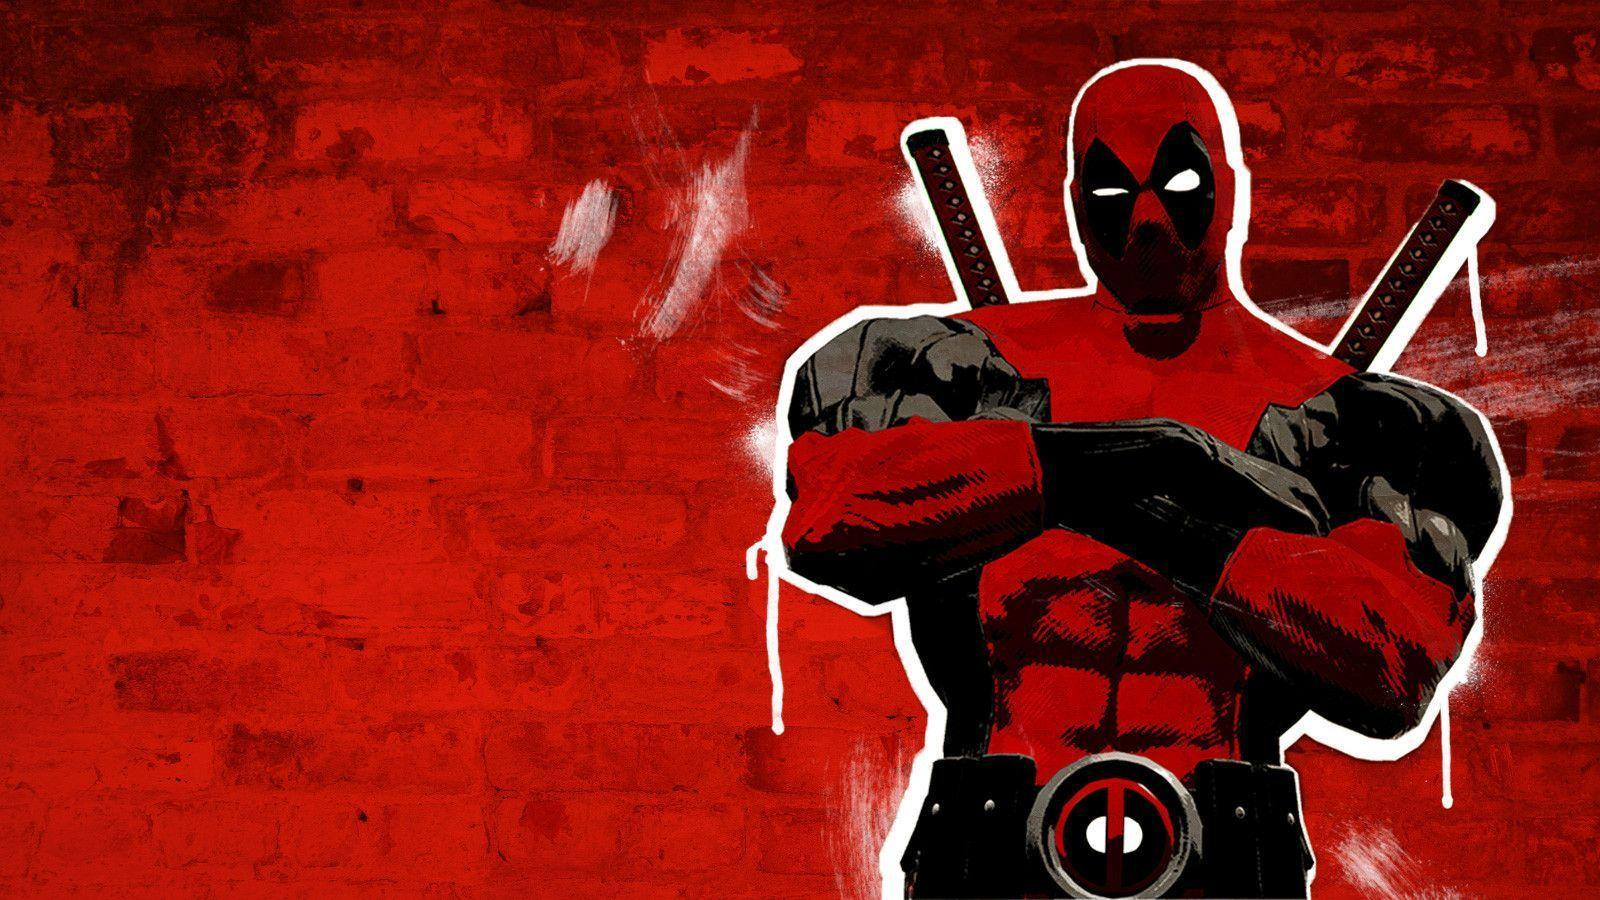 Deadpool Marvel Comics Hd Wallpapers